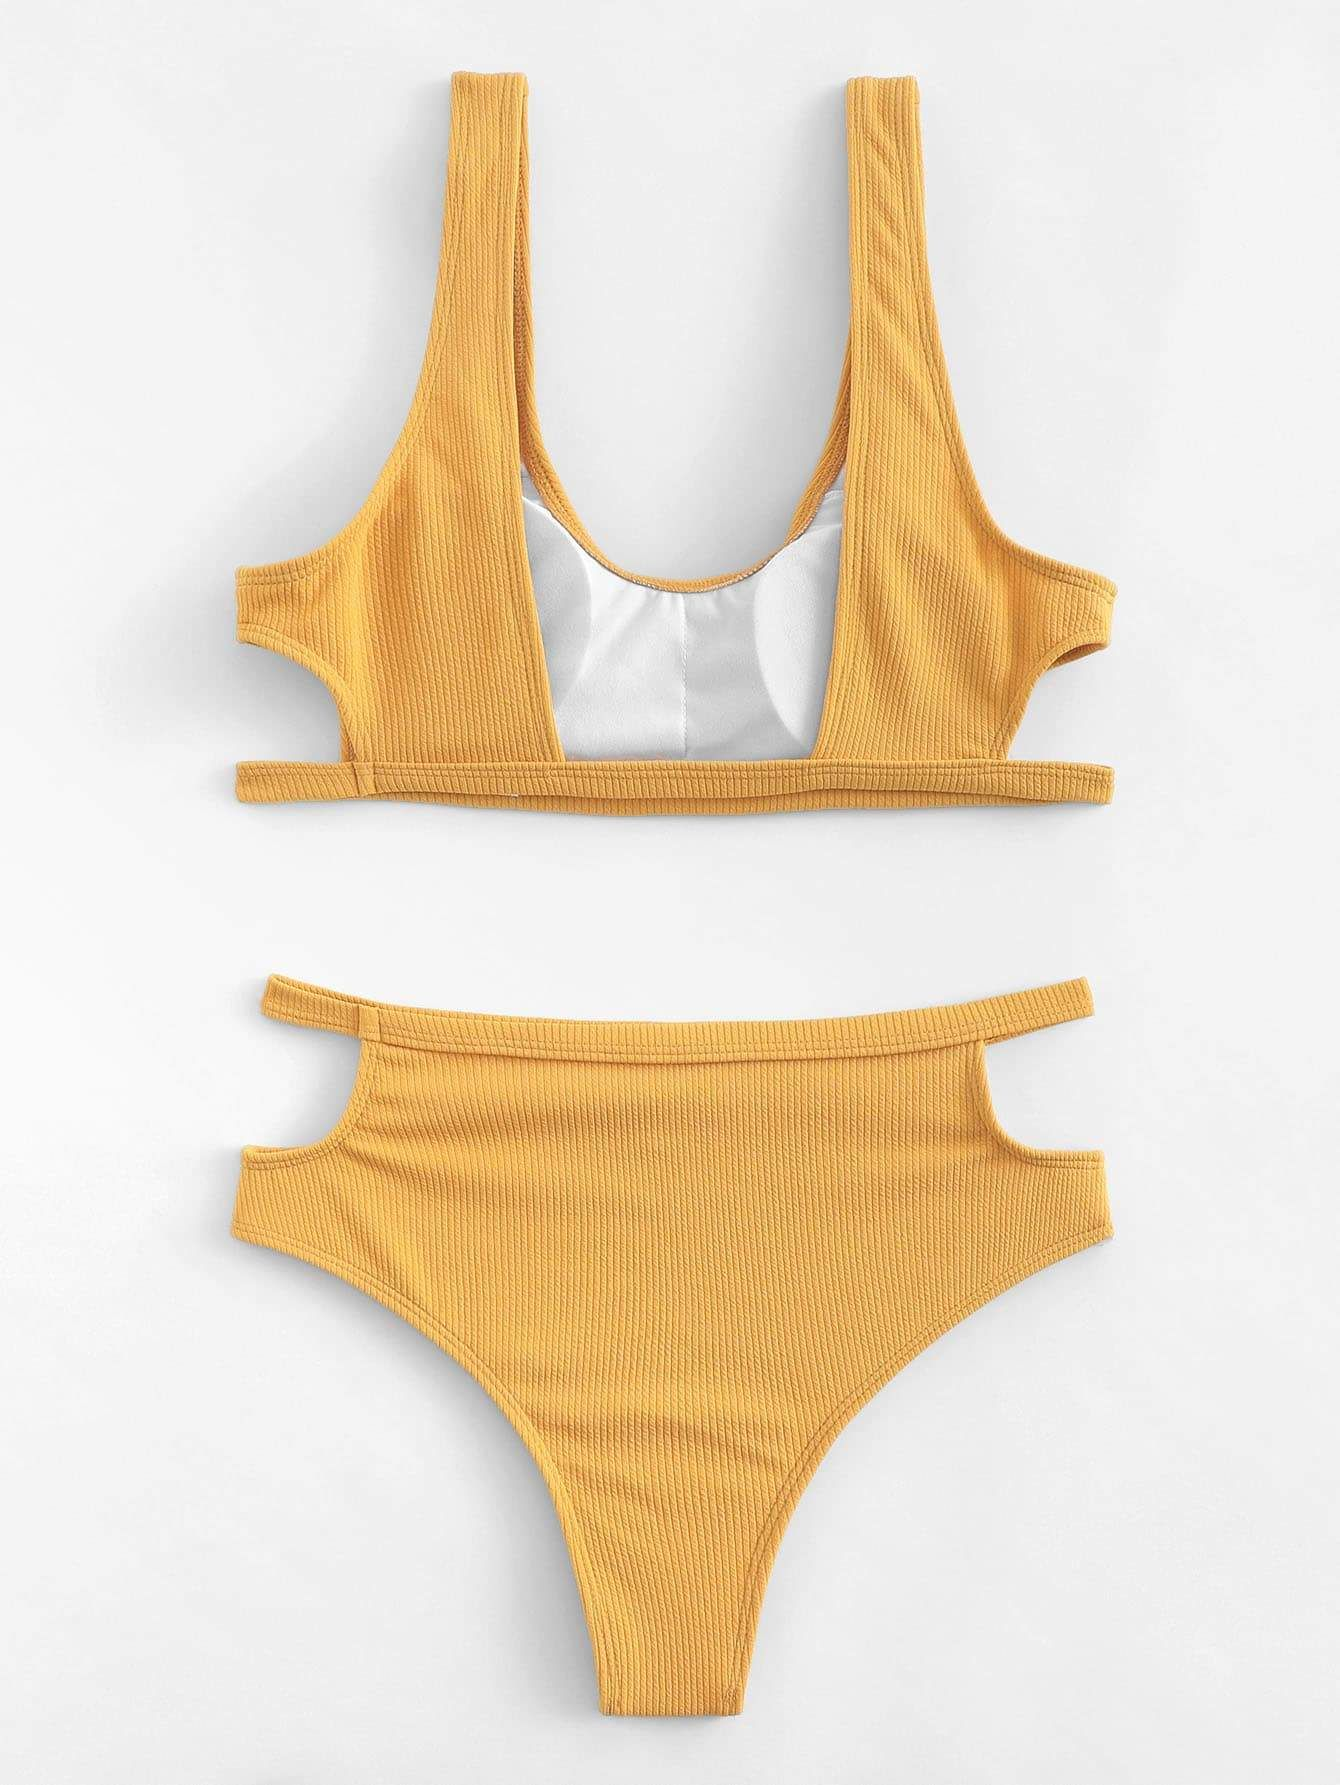 de2c3b7d7d4410 Cut Out Top With Ribbed Bikini Set in 2019 | Bikini's ...a Summer ...